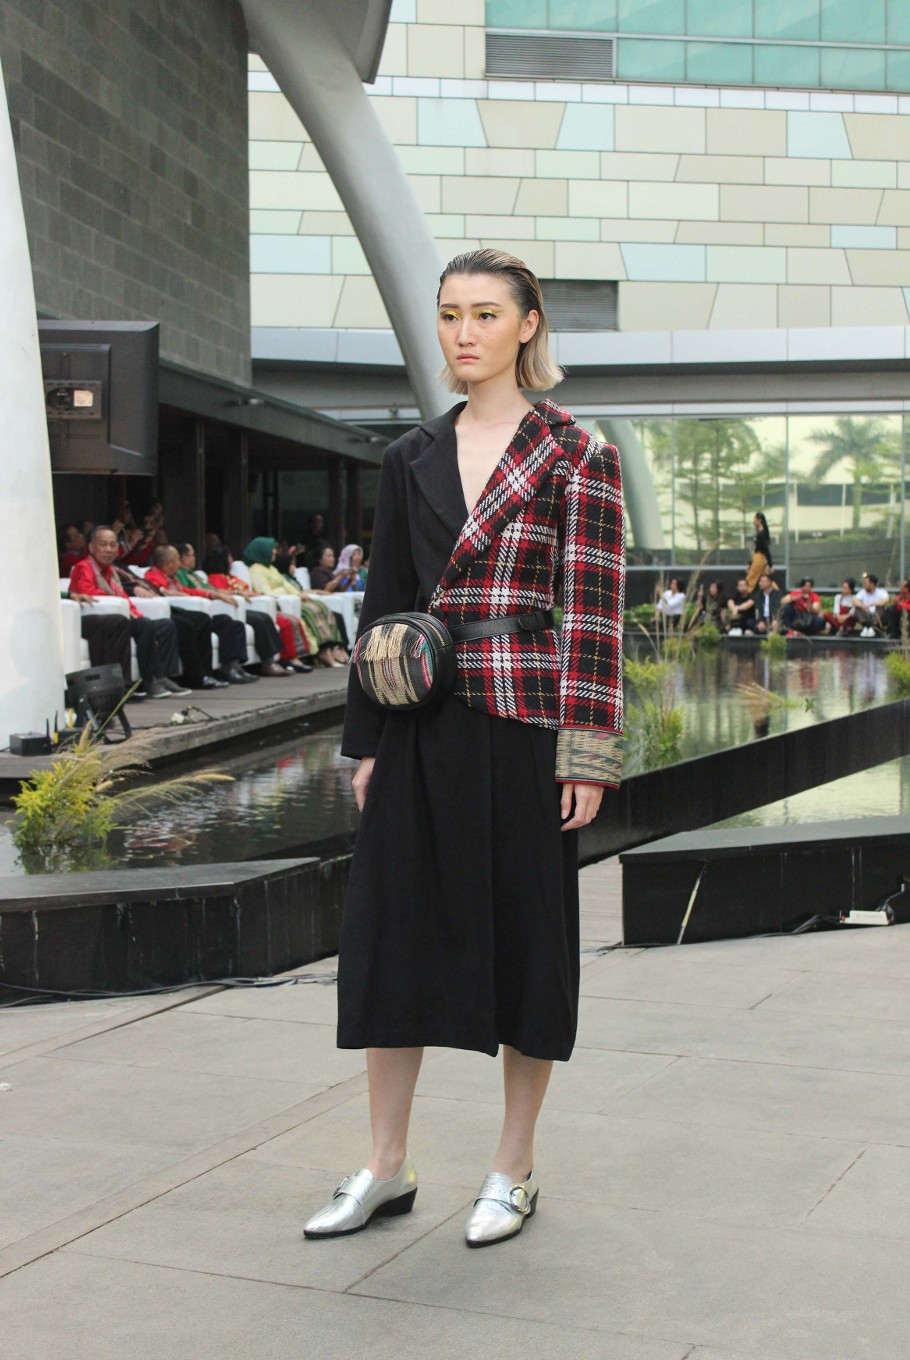 A model wears a coat from Billy Tjong's ready to wear collection.